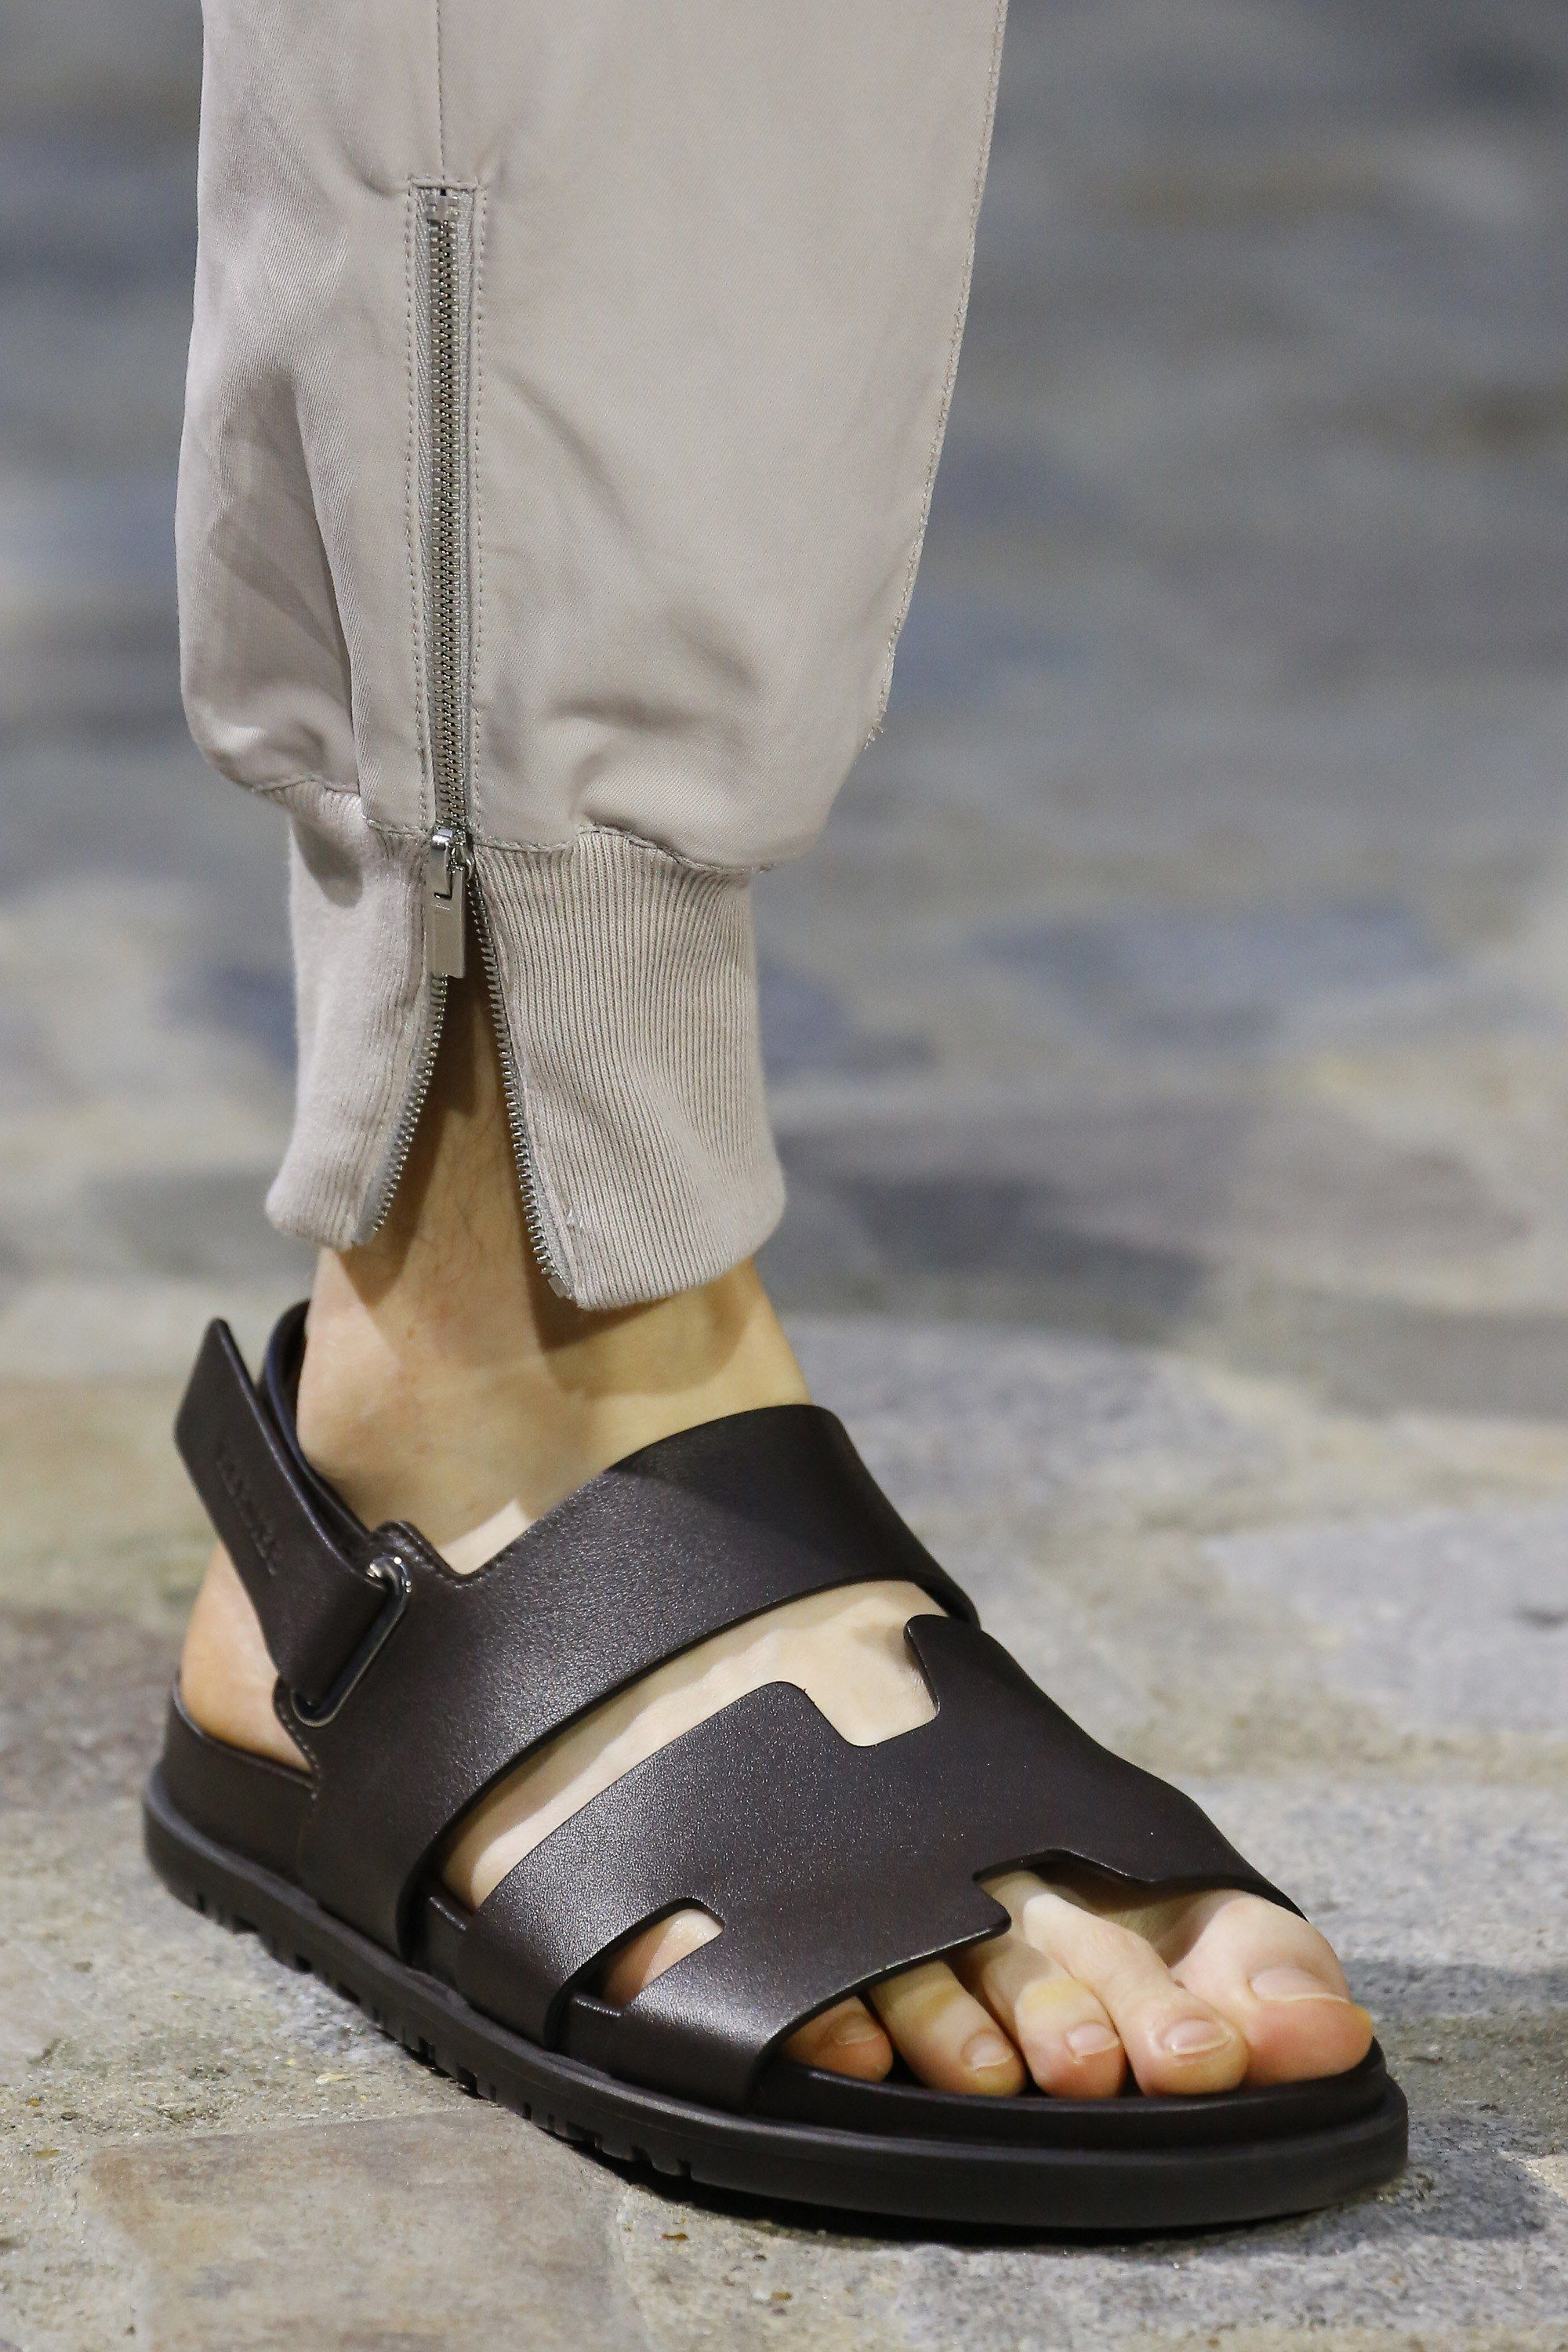 Mens leather sandals, Leather sandals